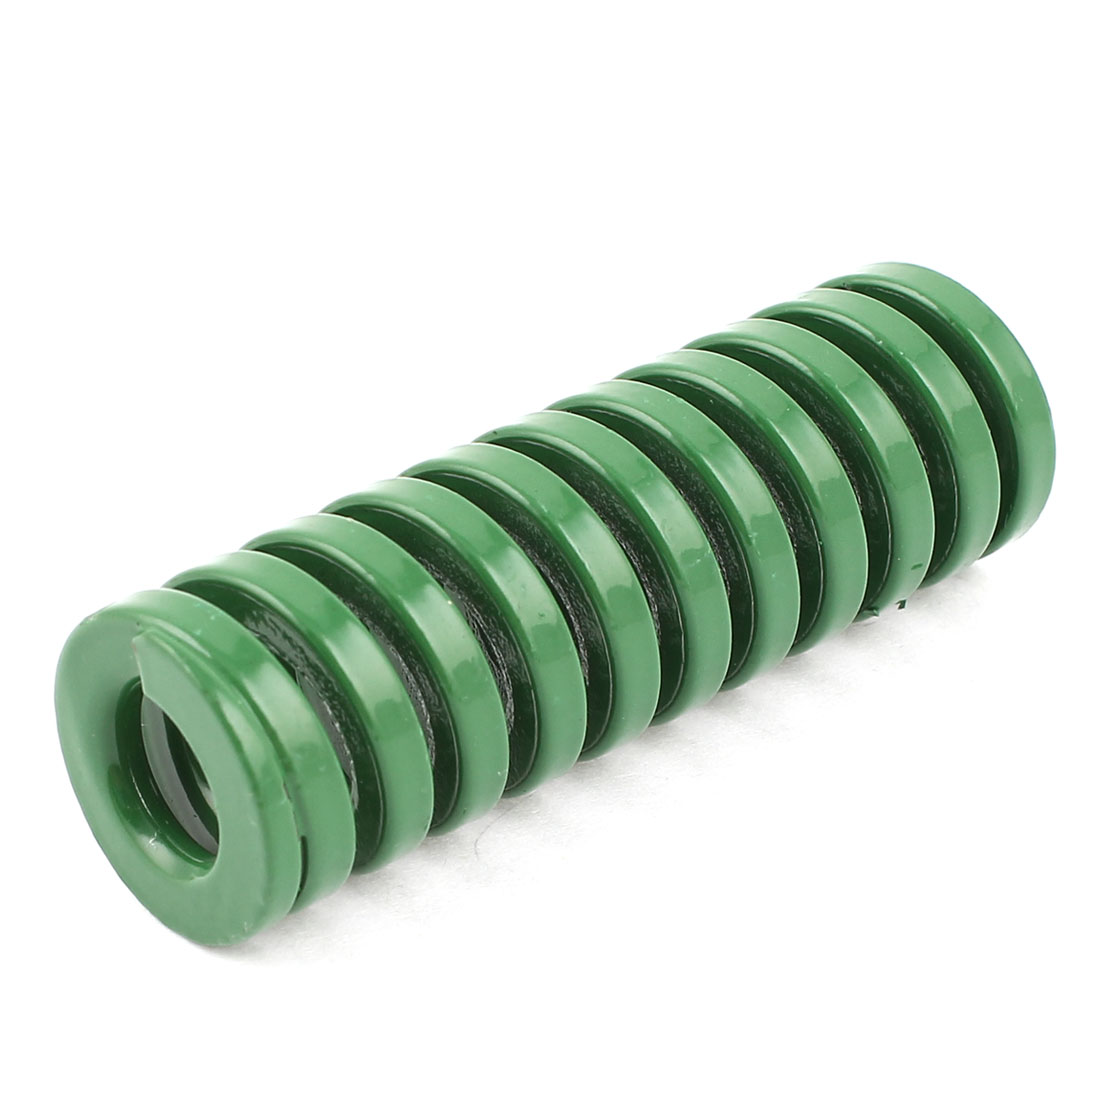 Green Alloy Steel Extra Heavy Load Compression Die Spring 22mm x 11mm x 65mm